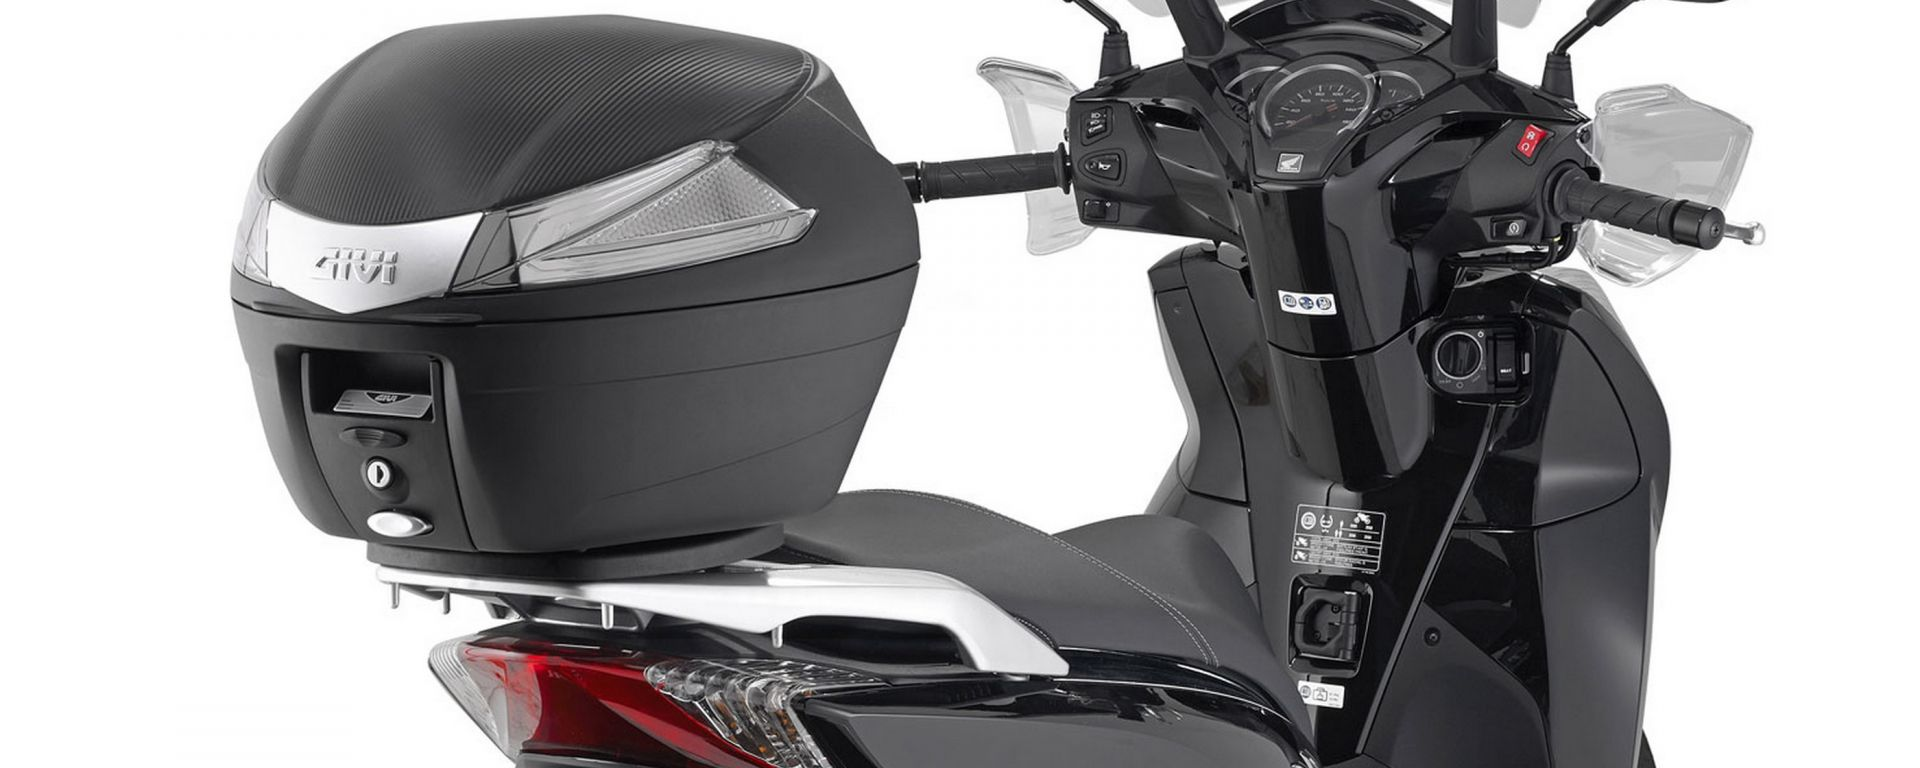 Givi: bauletto B34 e B34 Tech